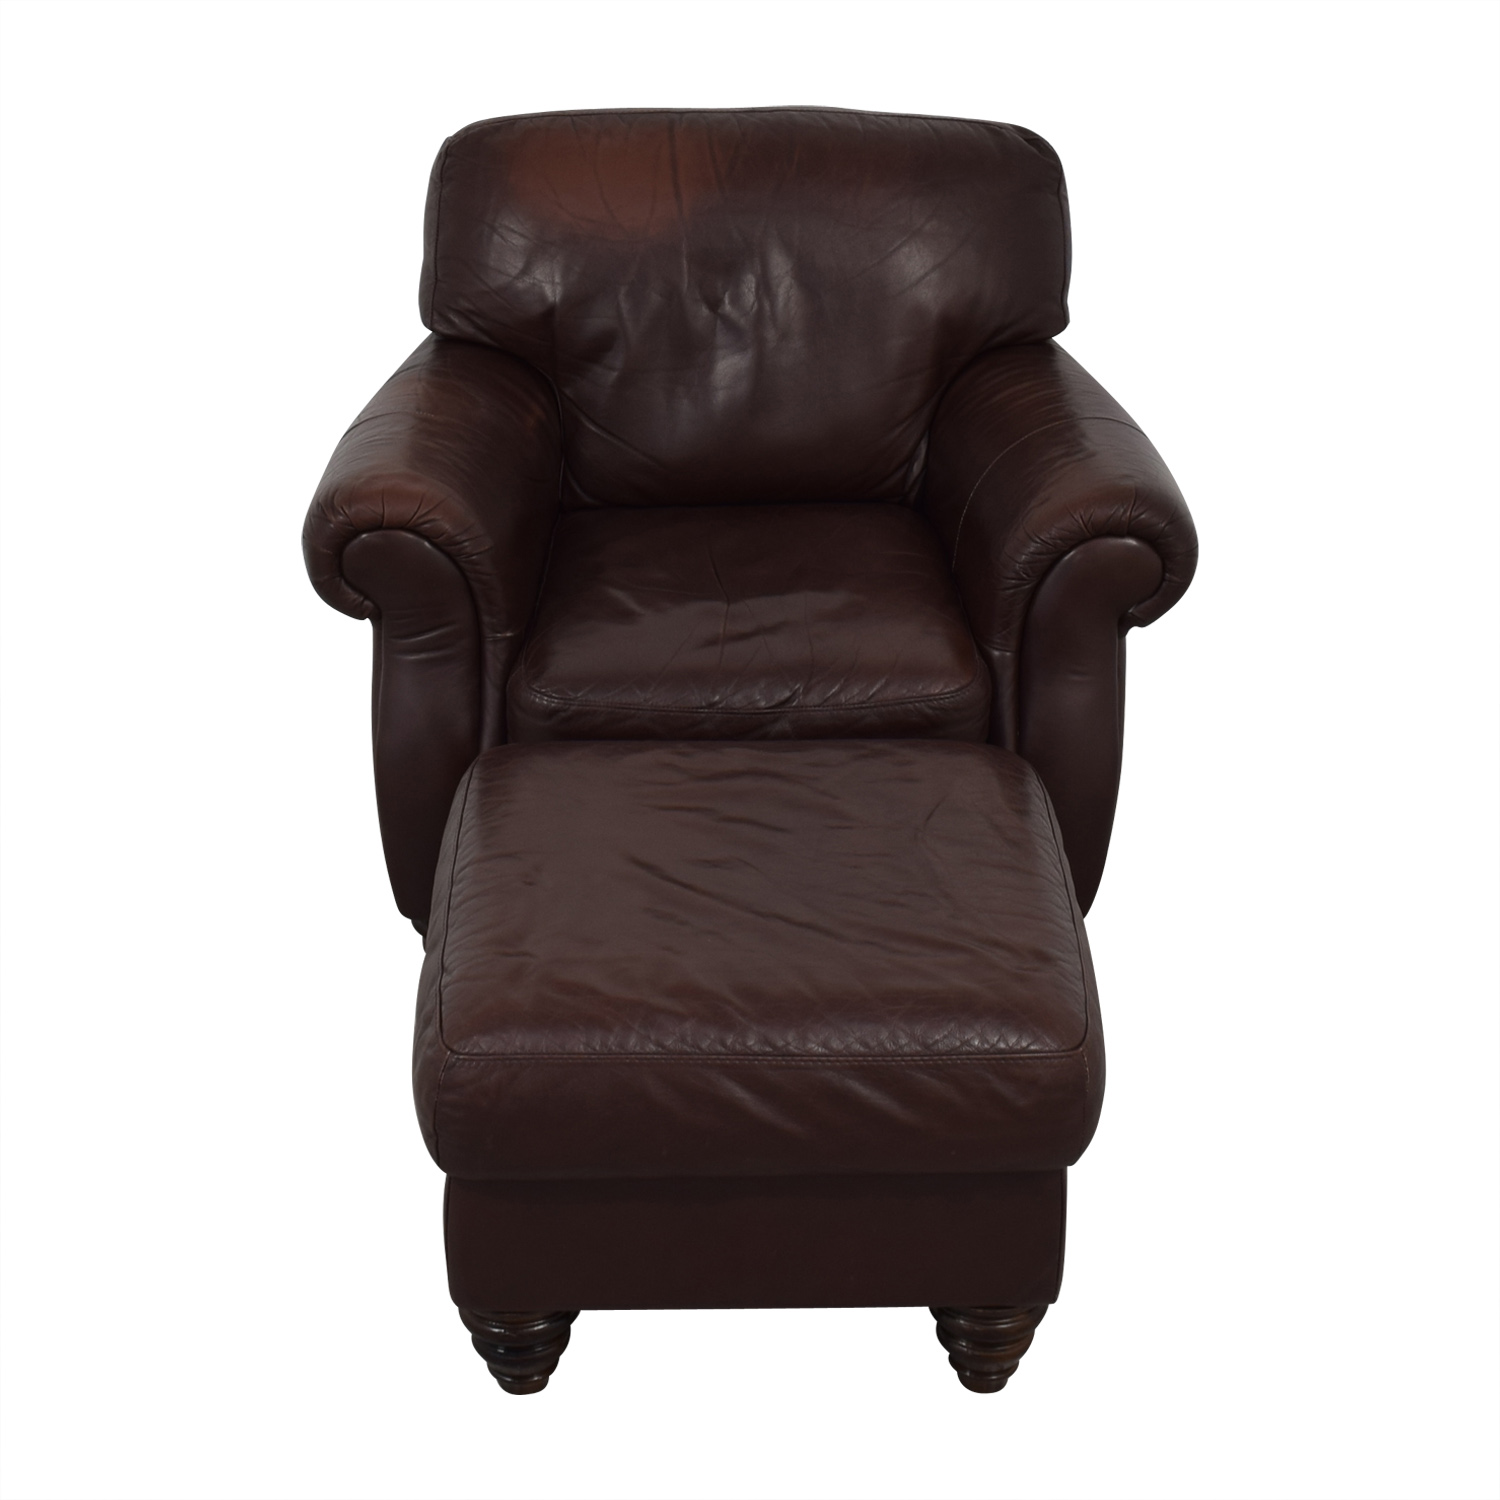 Fortunoff Fortunoff Brown Accent Chair and Ottoman nj